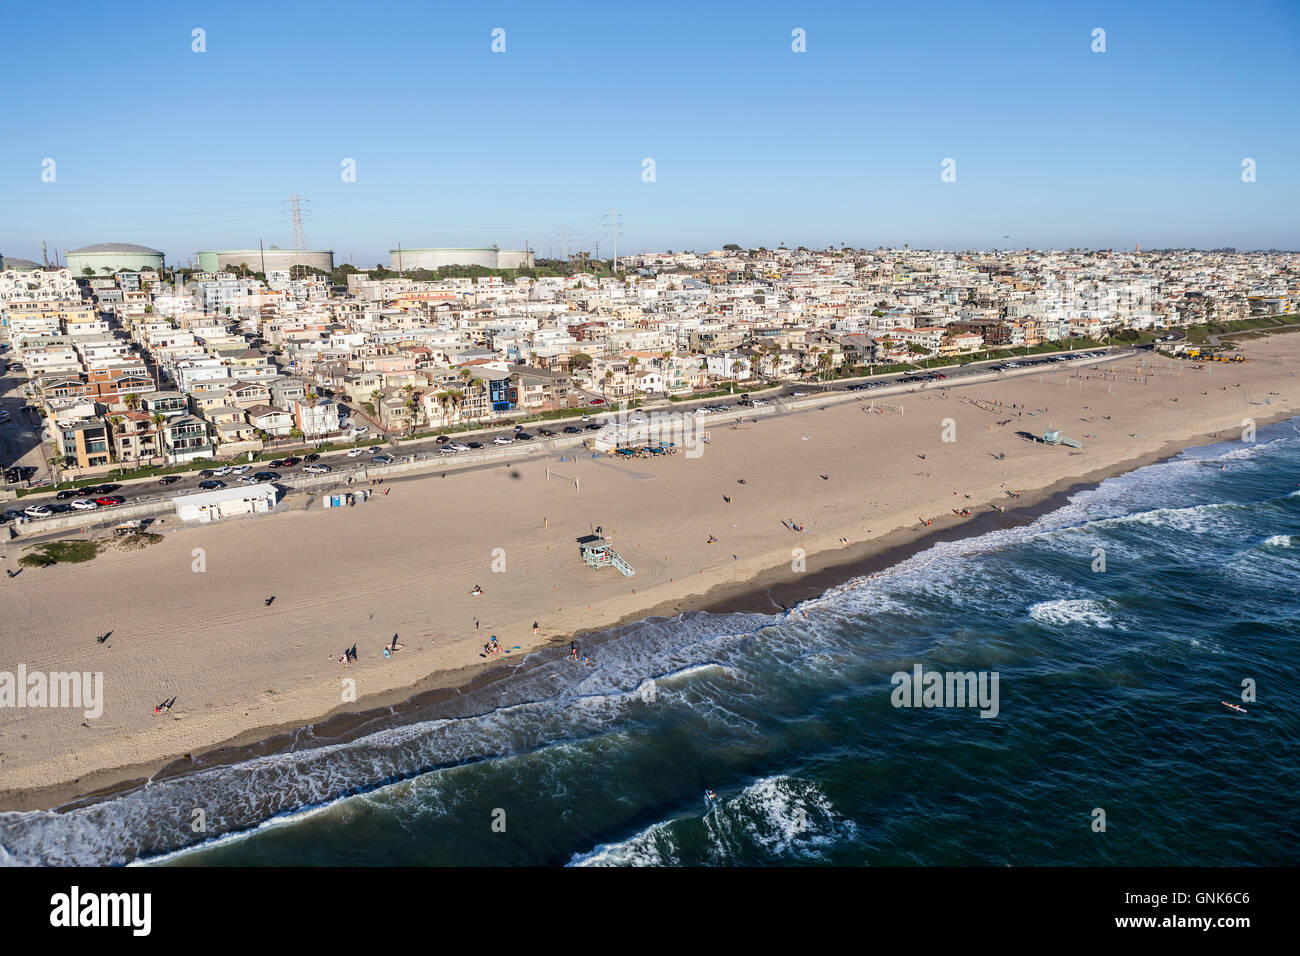 Afternoon aerial view of broad sandy beaches and layers of housing in Manhattan Beach, near Los Angeles, California. - Stock Image